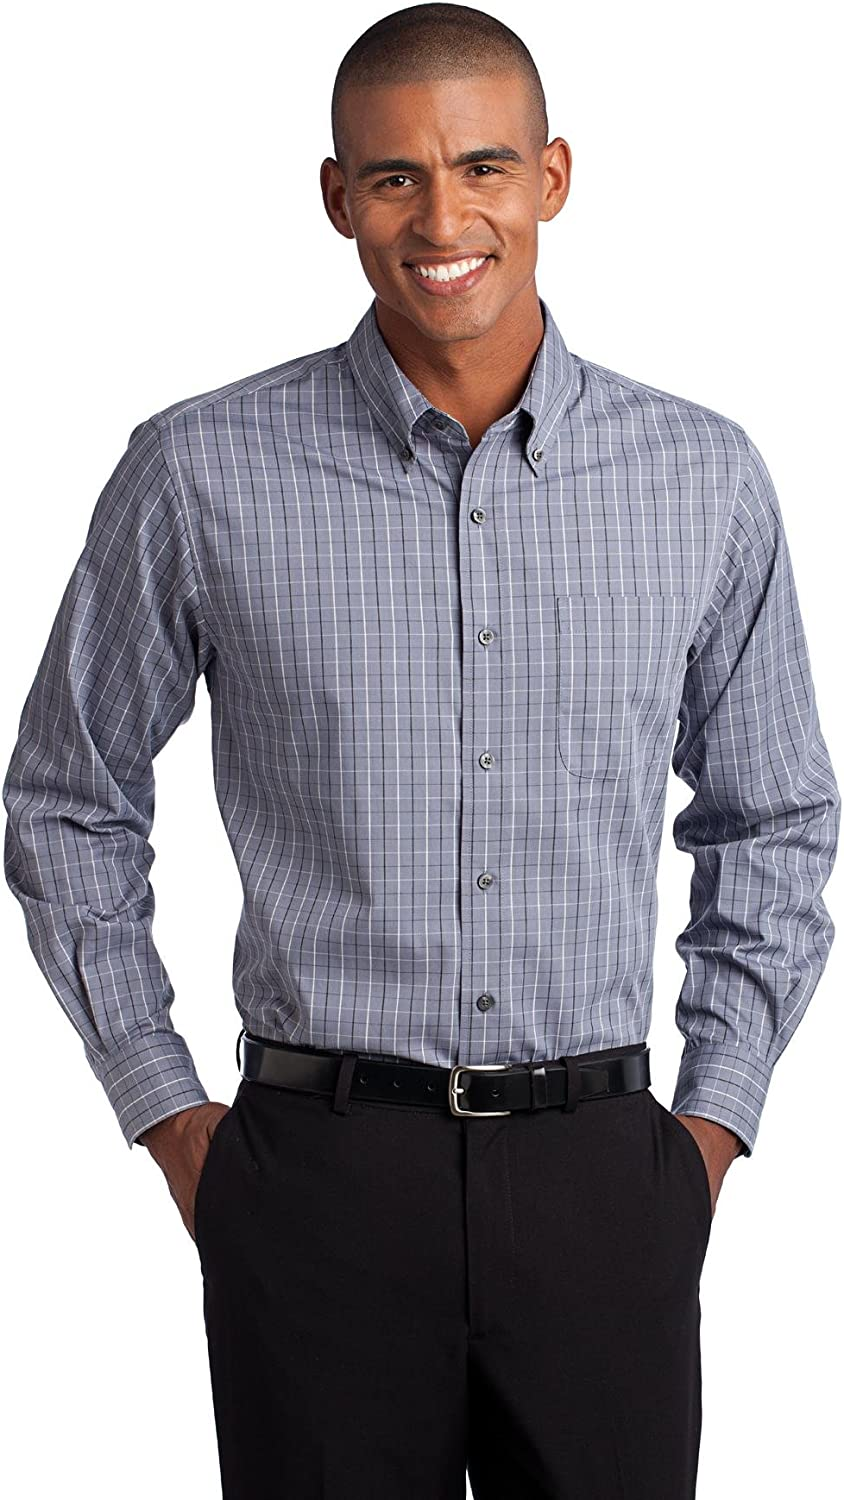 Port Authority Mens Tall Tattersall Easy Care Shirt (TLS642) -Grey/White -3XLT